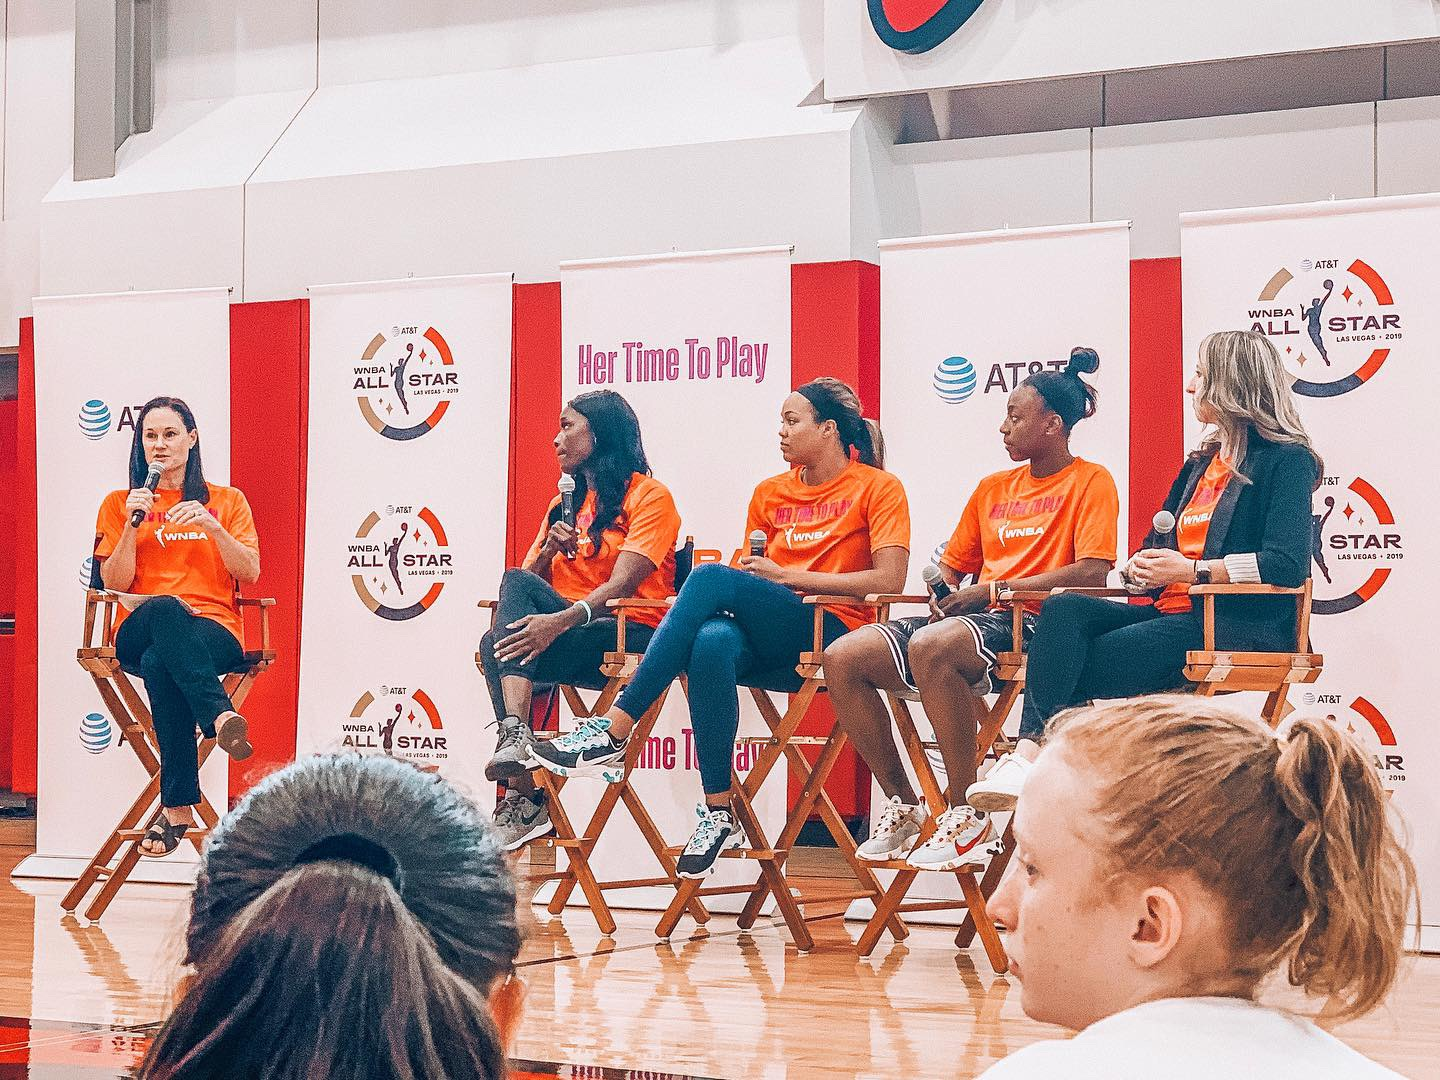 """Aces, WNBA All Stars and Legends Host """"Her Time to Play"""" Clinic ahead of All-Star 2019 -"""